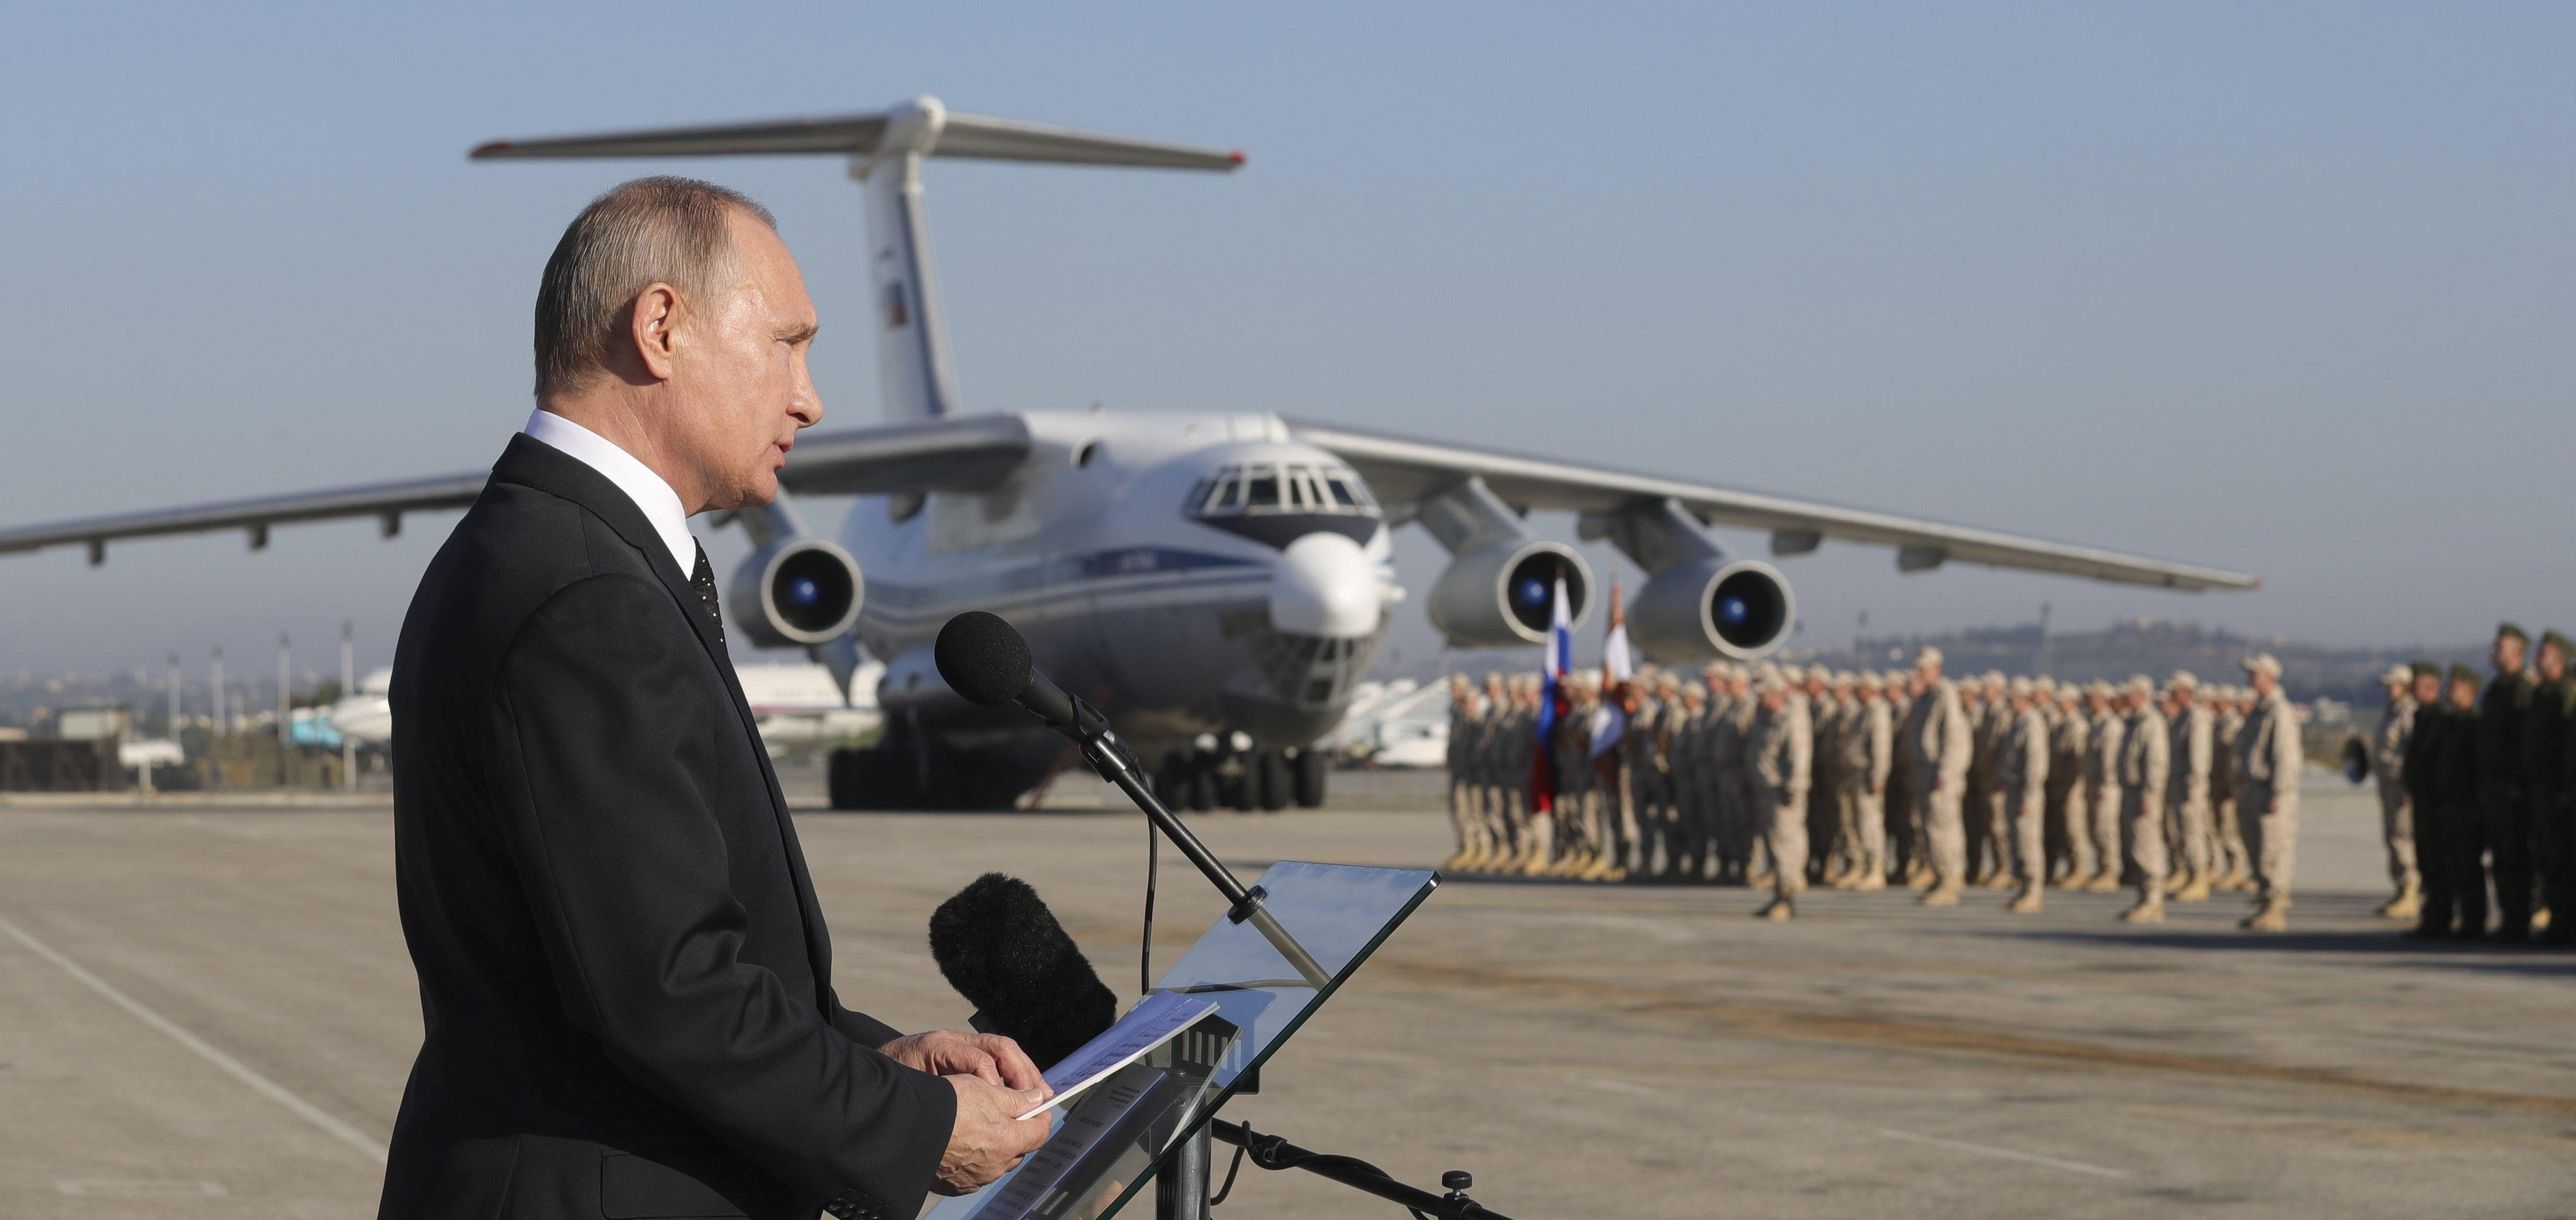 FILE PHOTO: Russian President Vladimir Putin addresses servicemen as he visits the Hmeymim air base in Latakia Province, Syria December 11, 2017. Sputnik/Mikhail Klimentyev/Sputnik via REUTERS ATTENTION EDITORS - THIS IMAGE WAS PROVIDED BY A THIRD PARTY/File Photo - RC13F85C4140